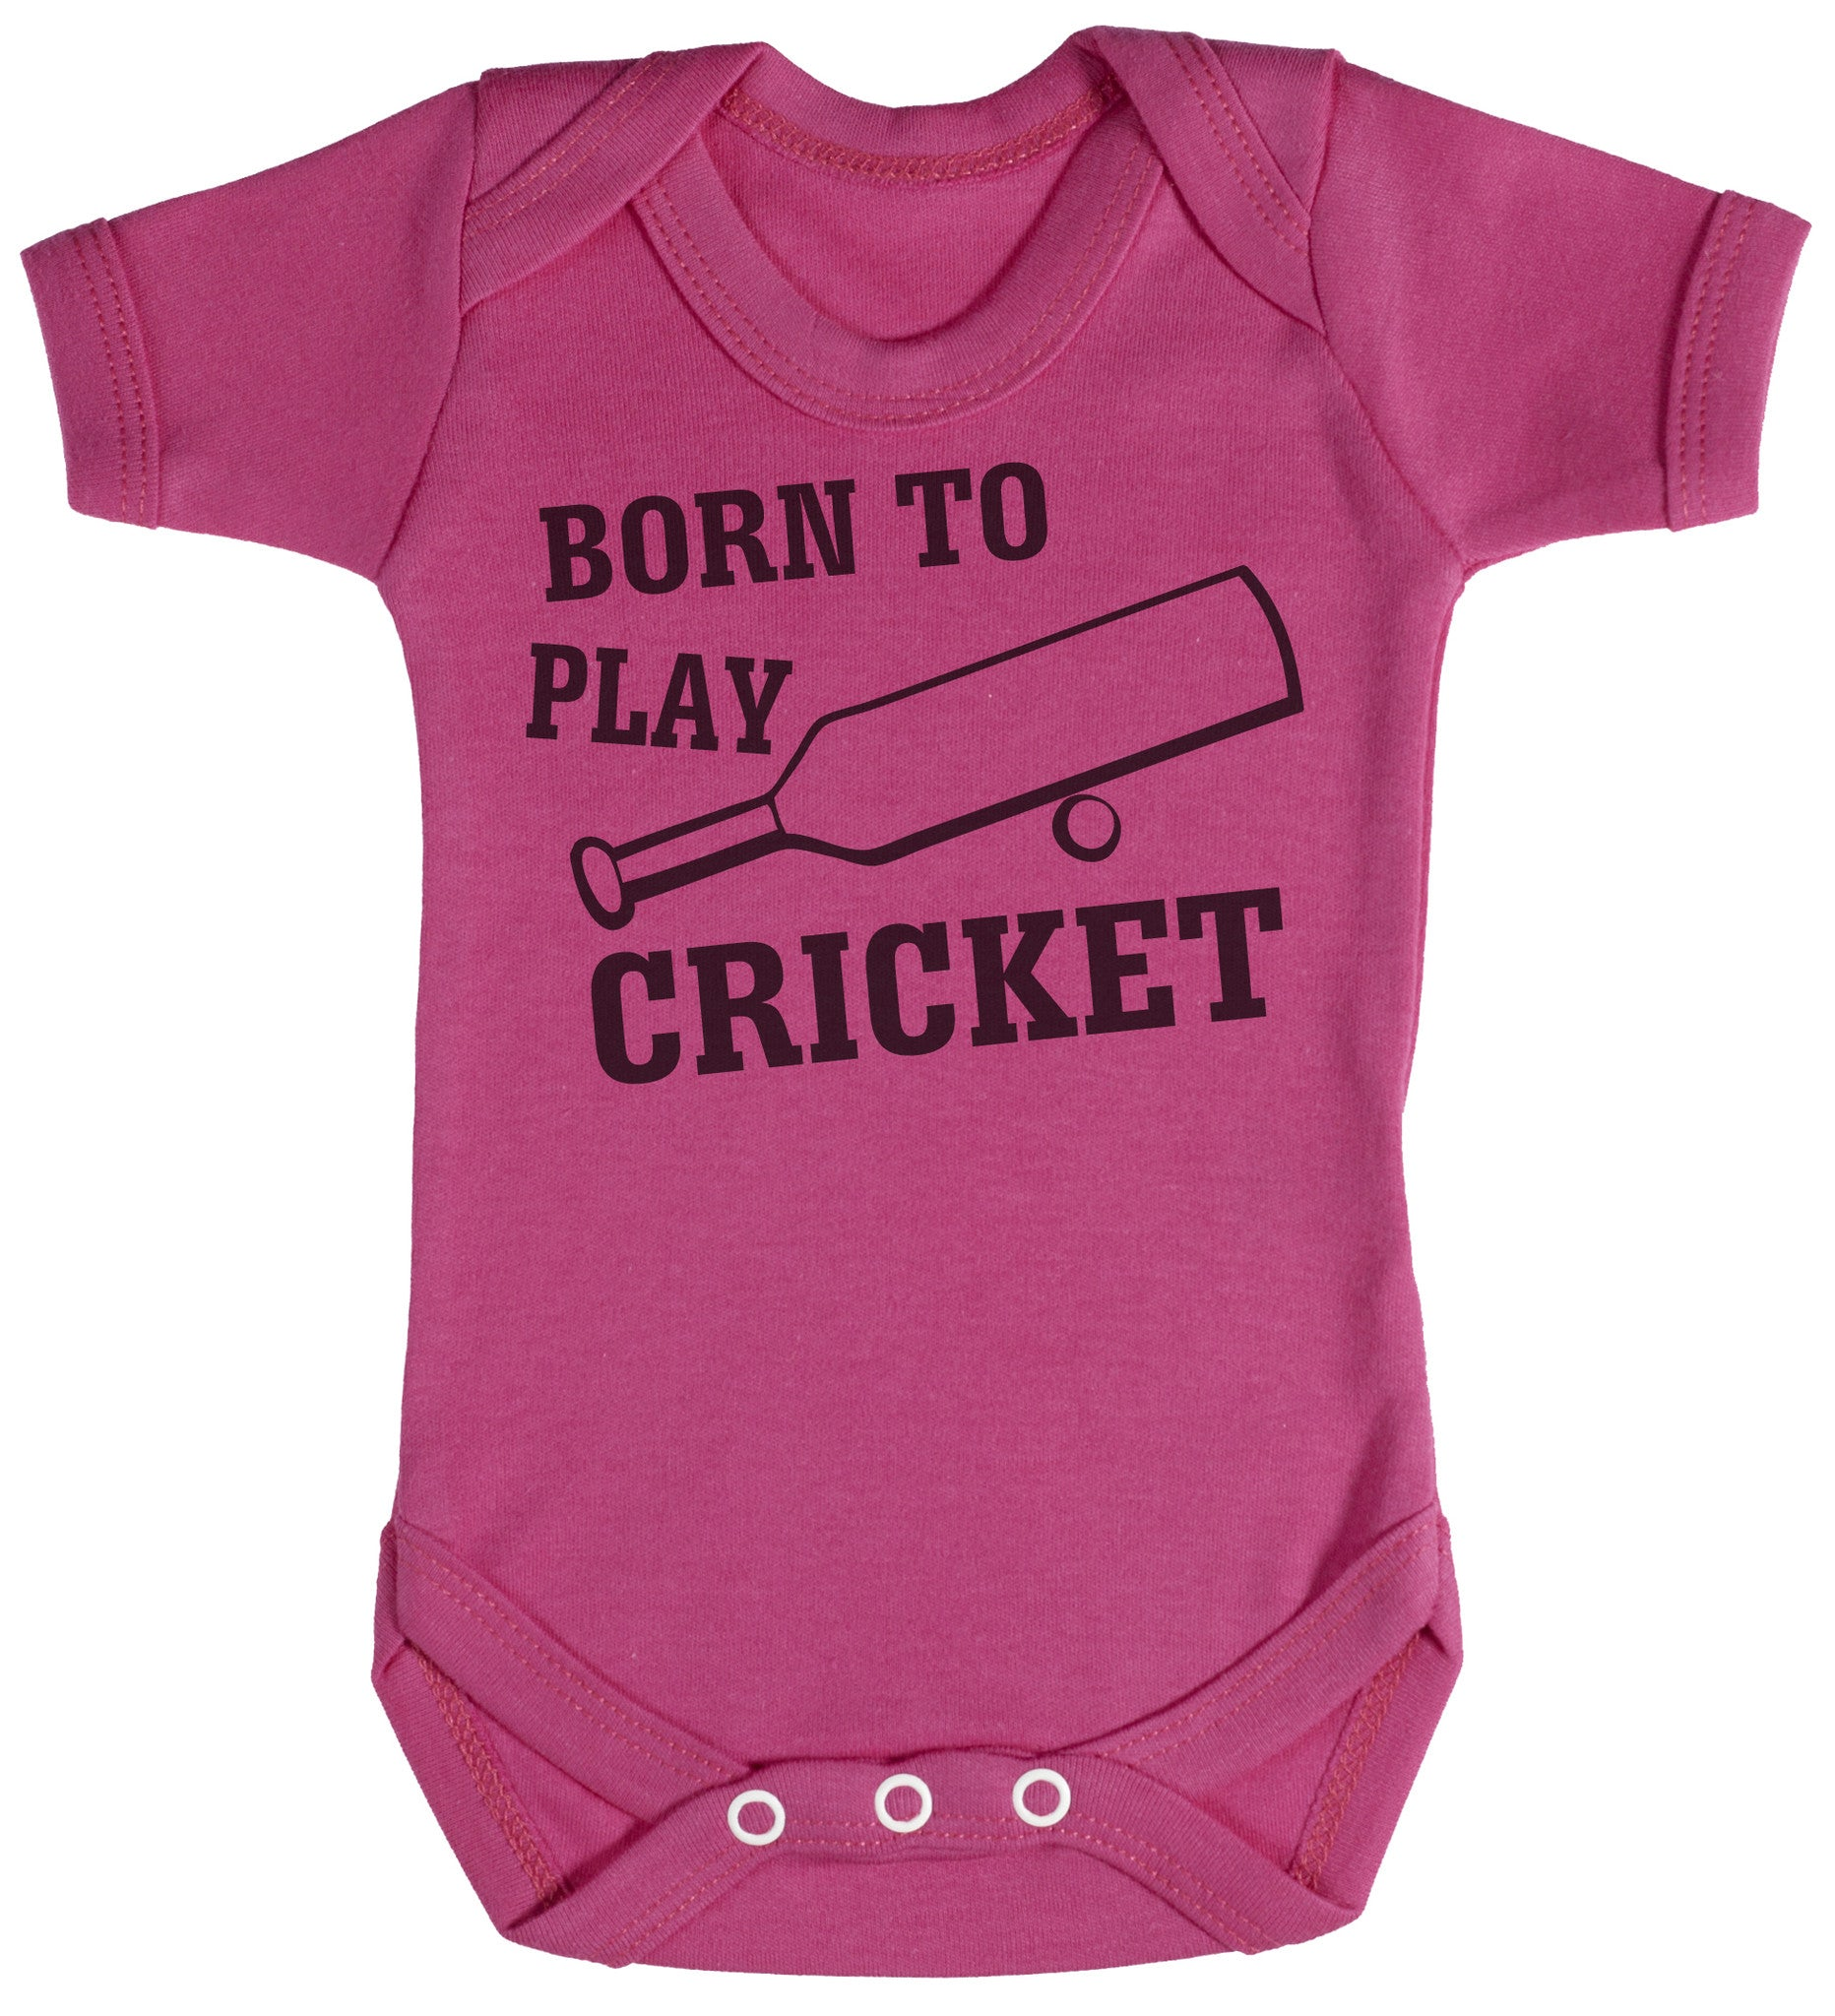 New Baby Vests Bodysuits for Boys Girls Gift Born to Go Cricket with My Daddy